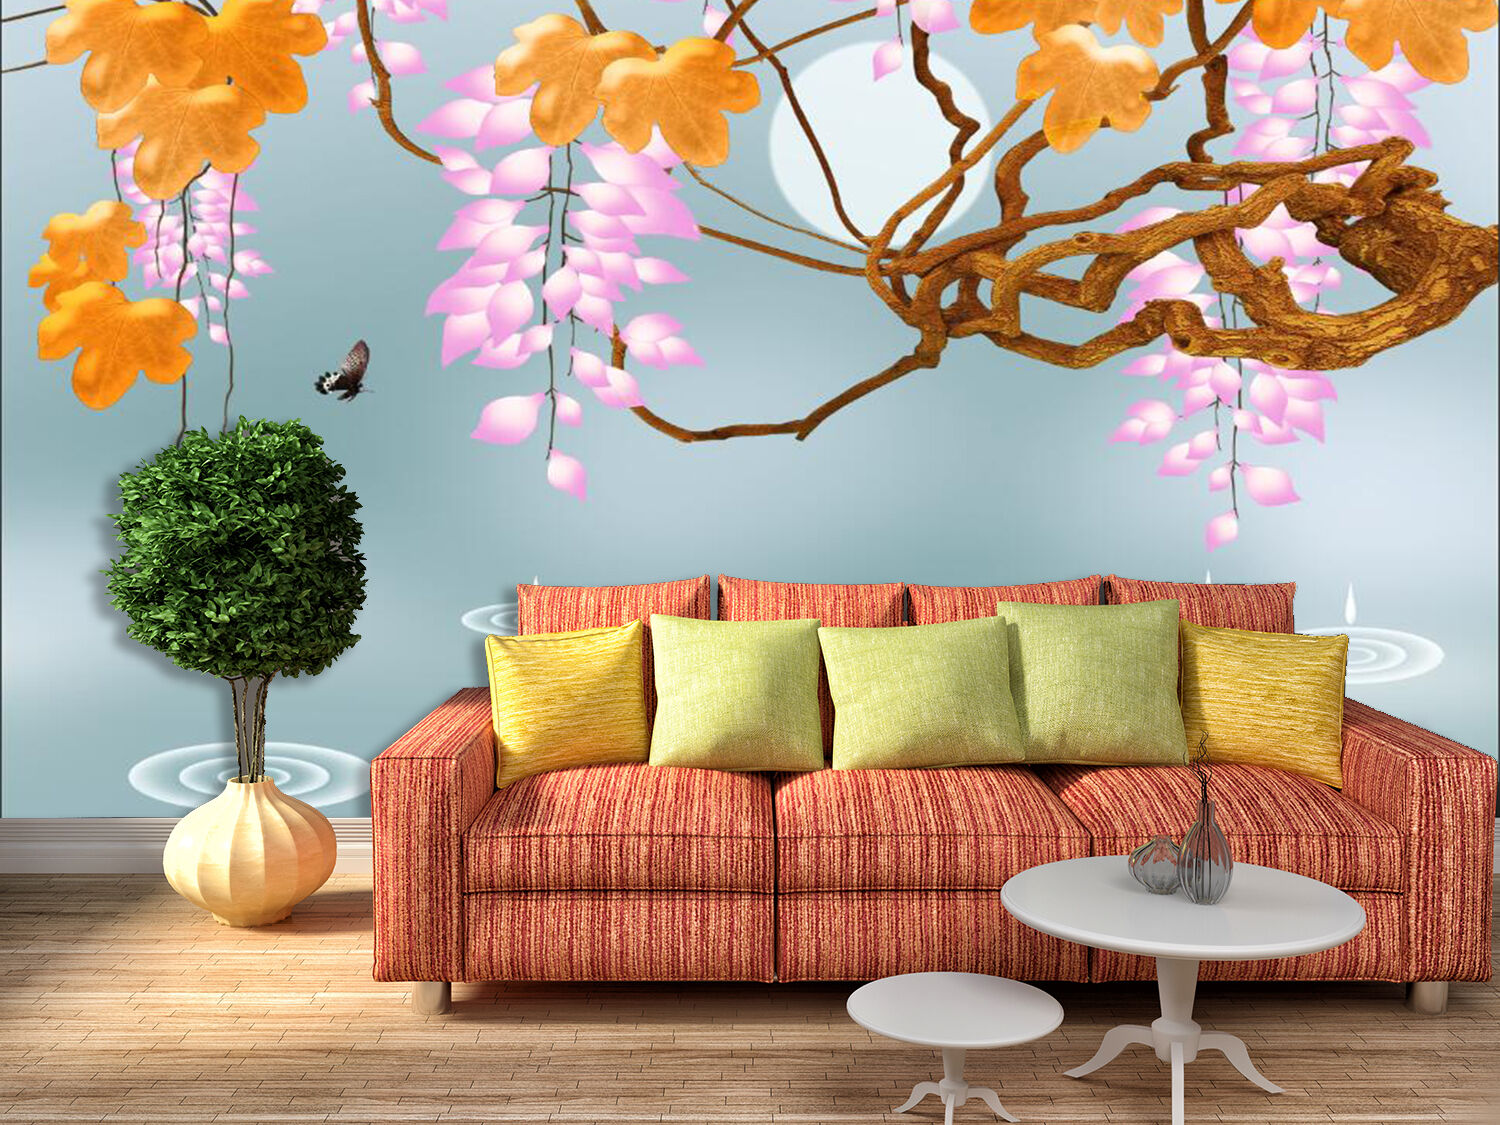 3D Beautiful Flowering Branch Wall Paper Print Decal Wall Deco Indoor wall Mural